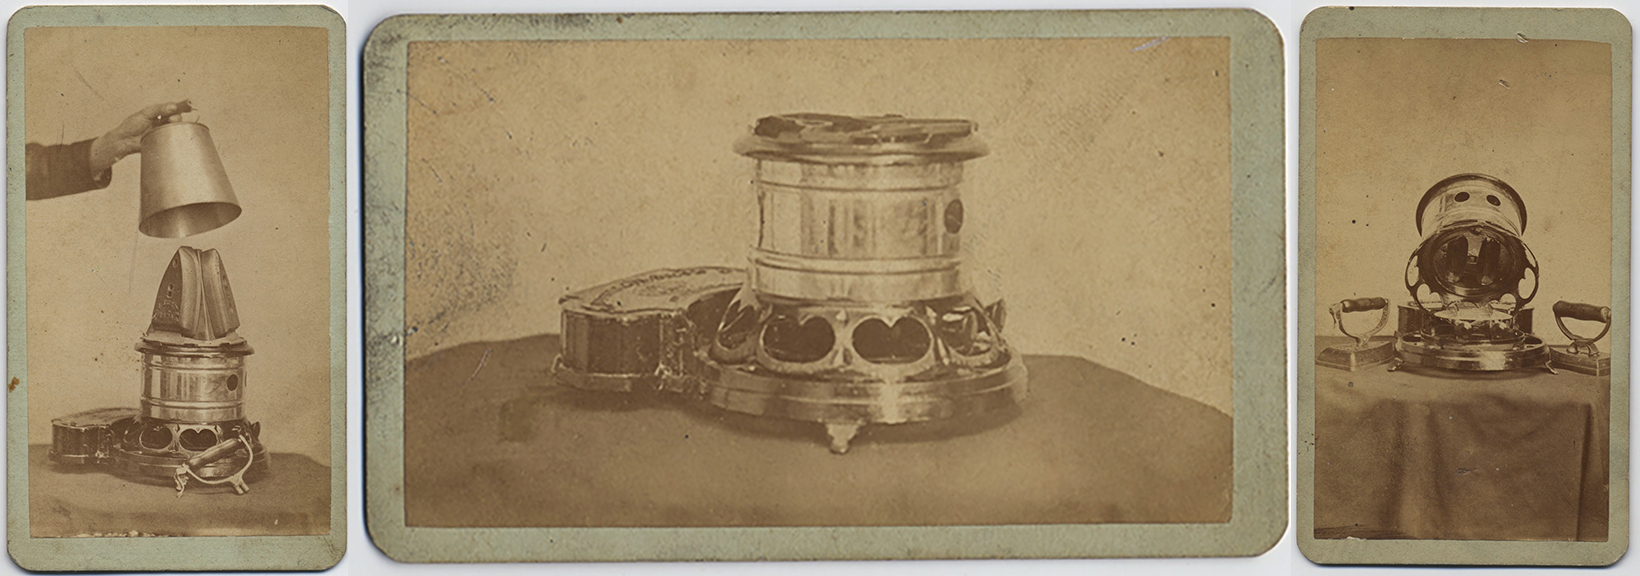 fp3504-3506(CDV_PatentImage_Heater)